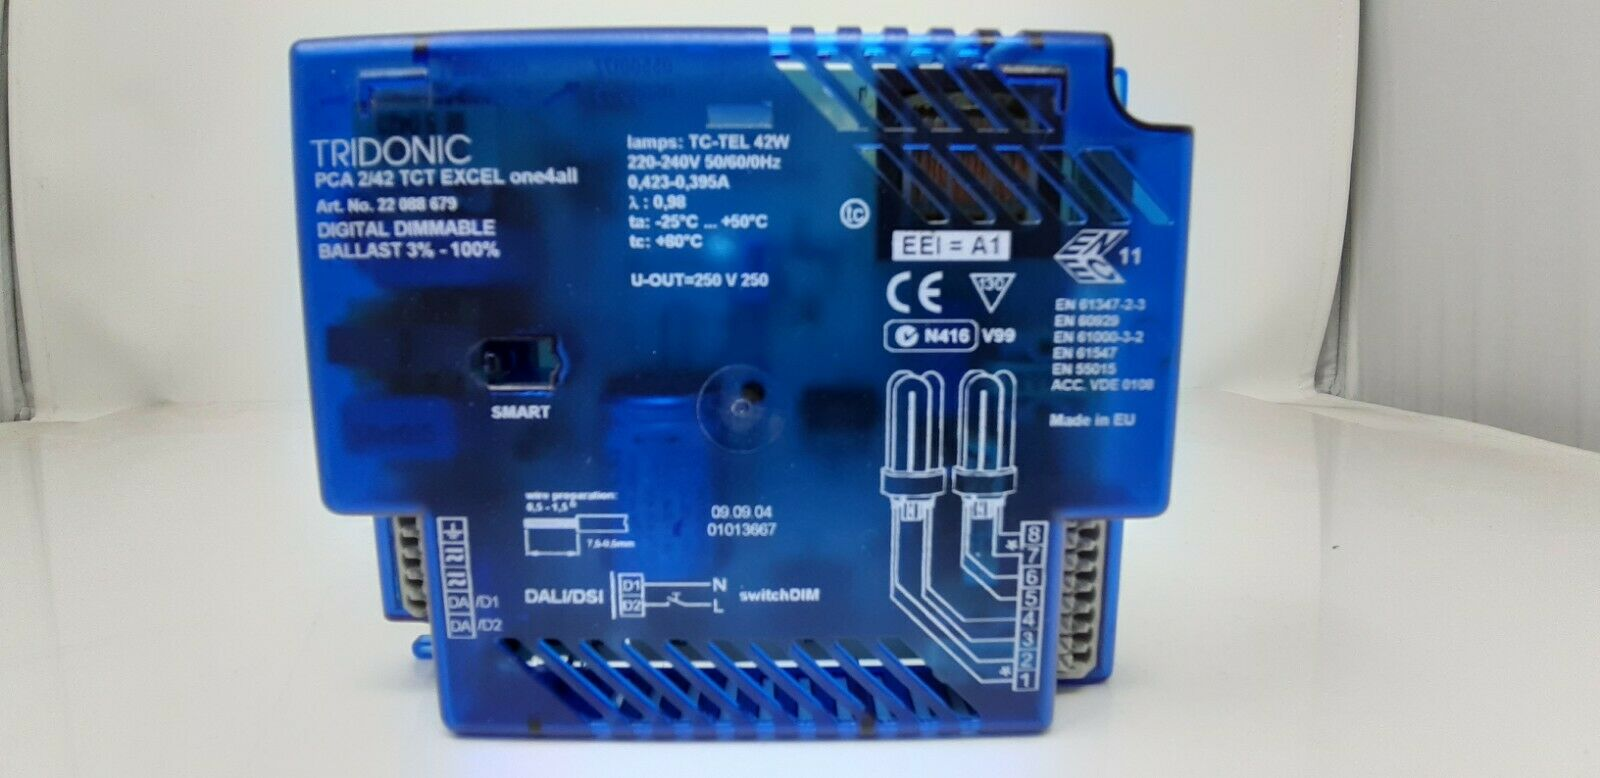 TRIDONIC 22088679 PCA 2 42 TCT EXCEL one4all digital dimmable ballast DALI DSI